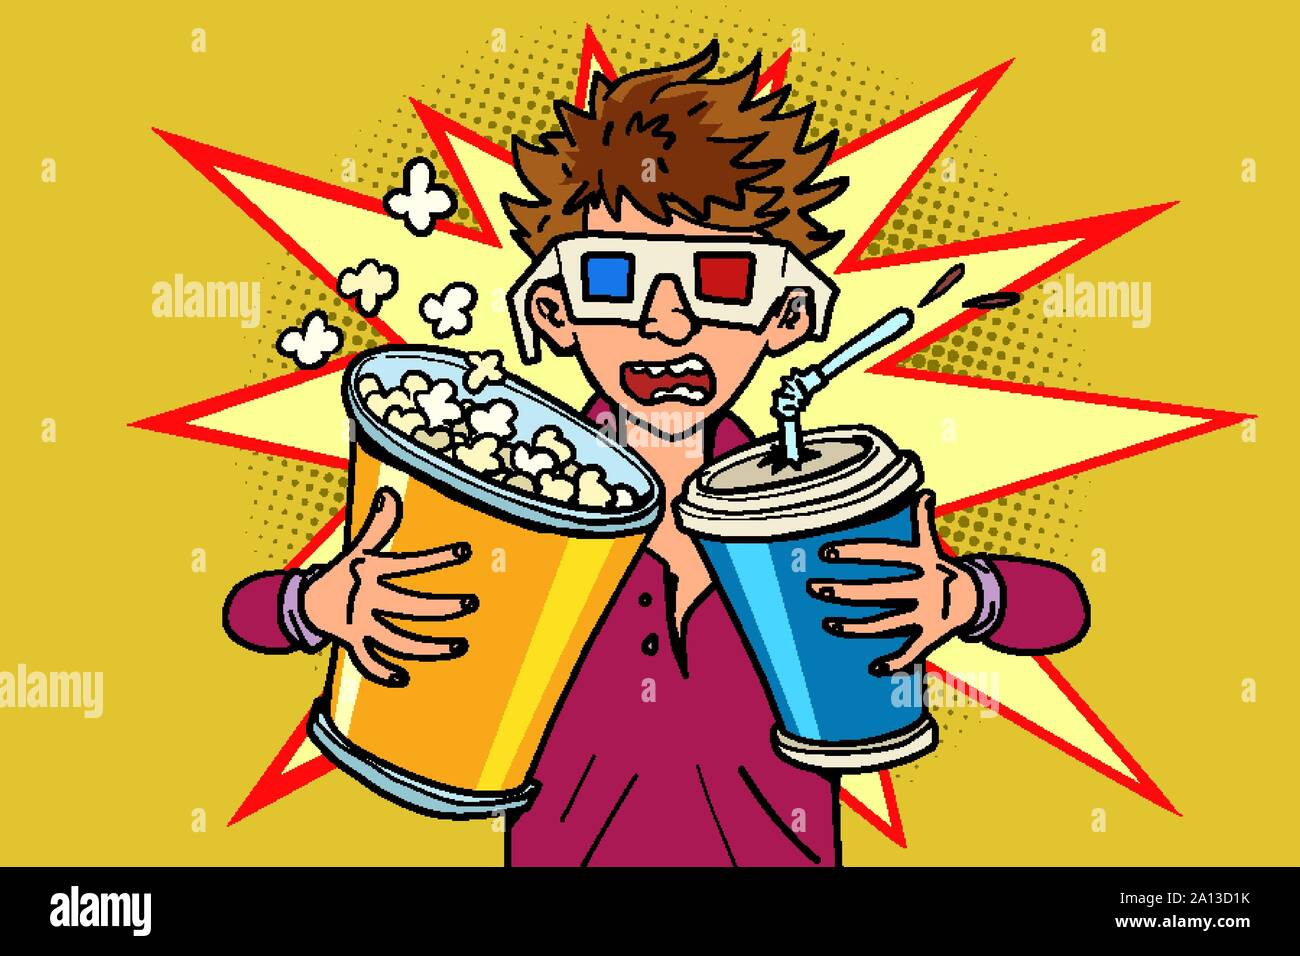 Cartoon Popcorn High Resolution Stock Photography And Images Alamy